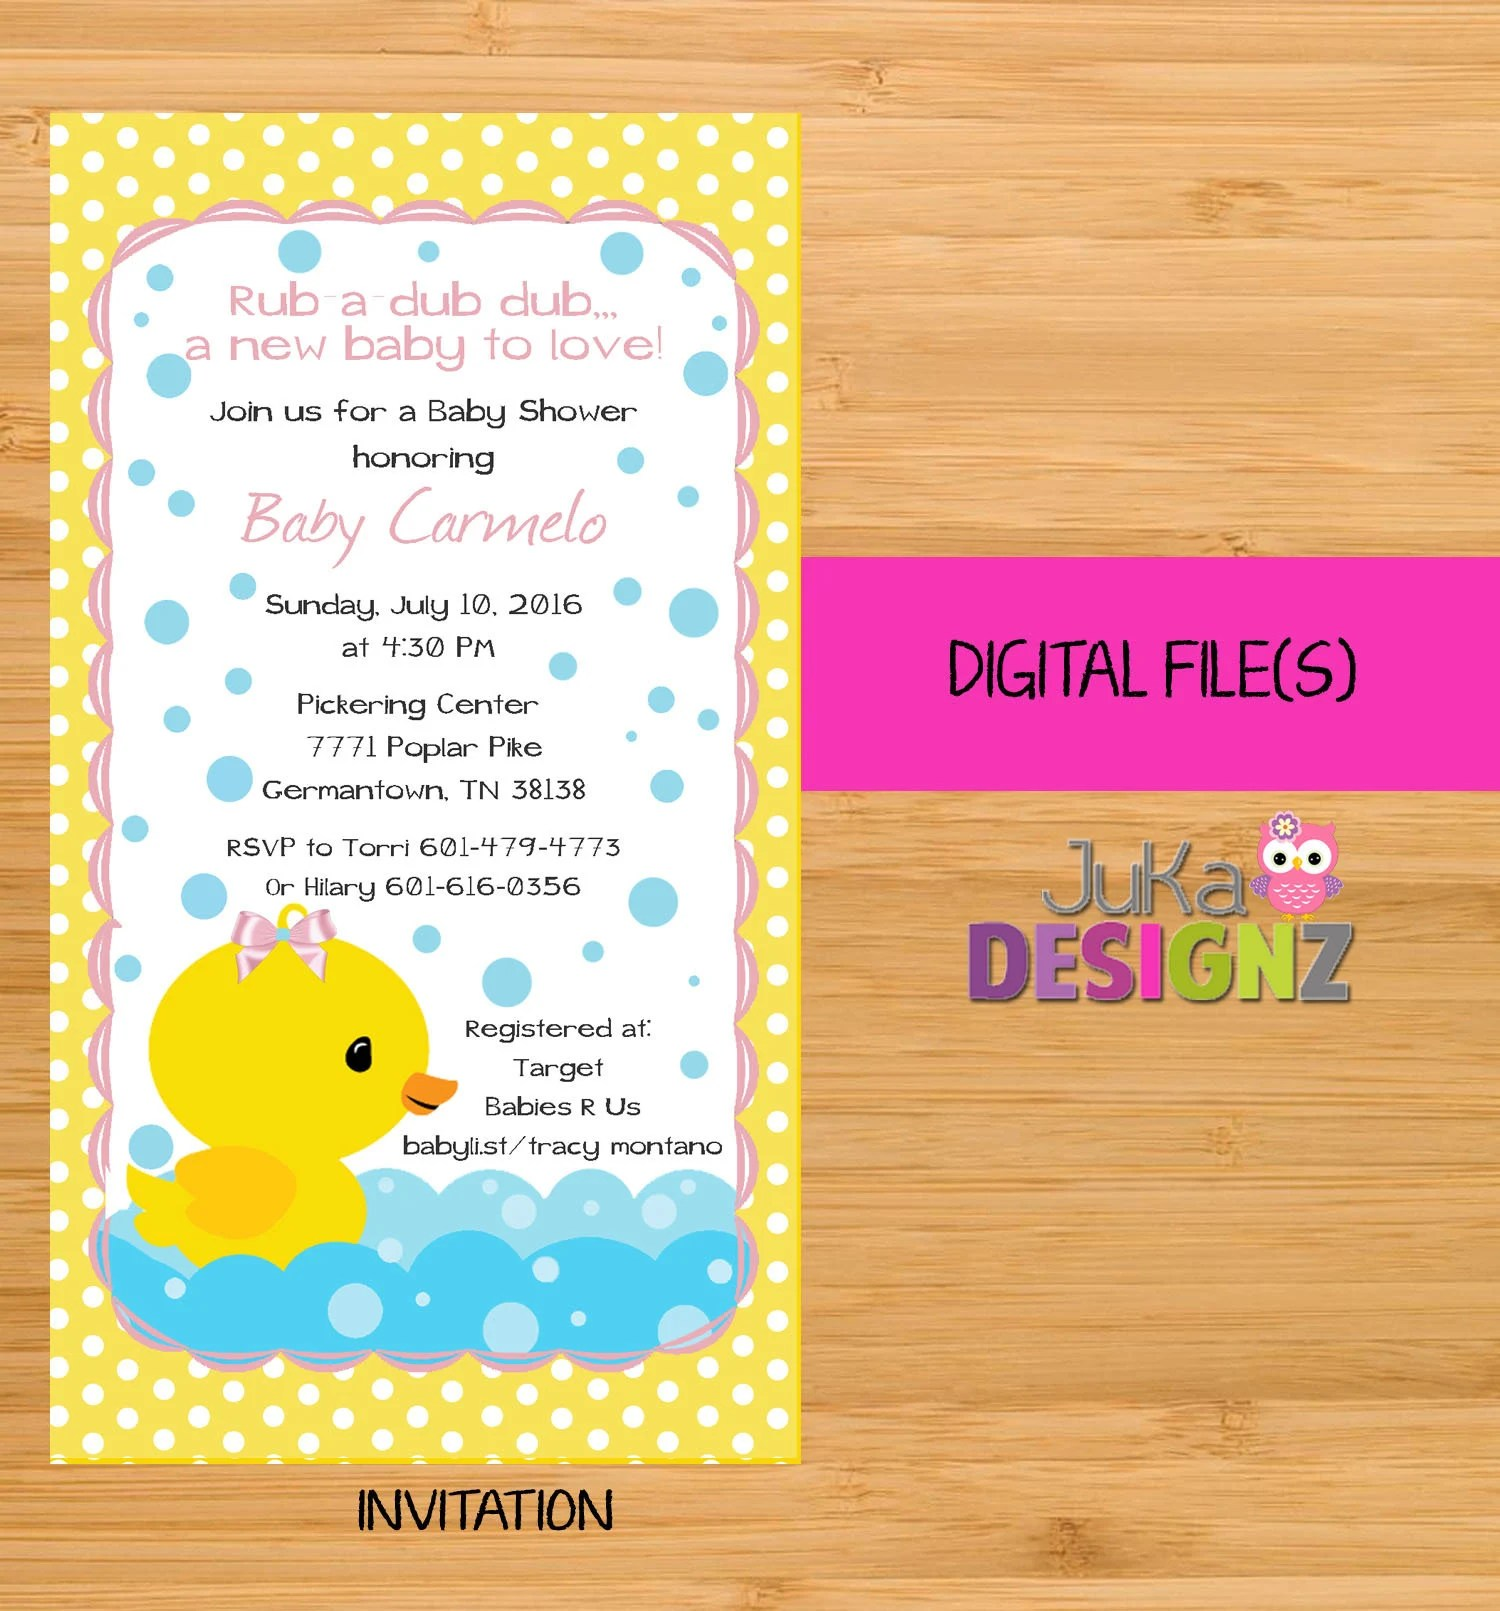 Babies R Us Pickering Rubber Duck Ducky Girl Baby Shower Invitationsand More Digital File S Uprint